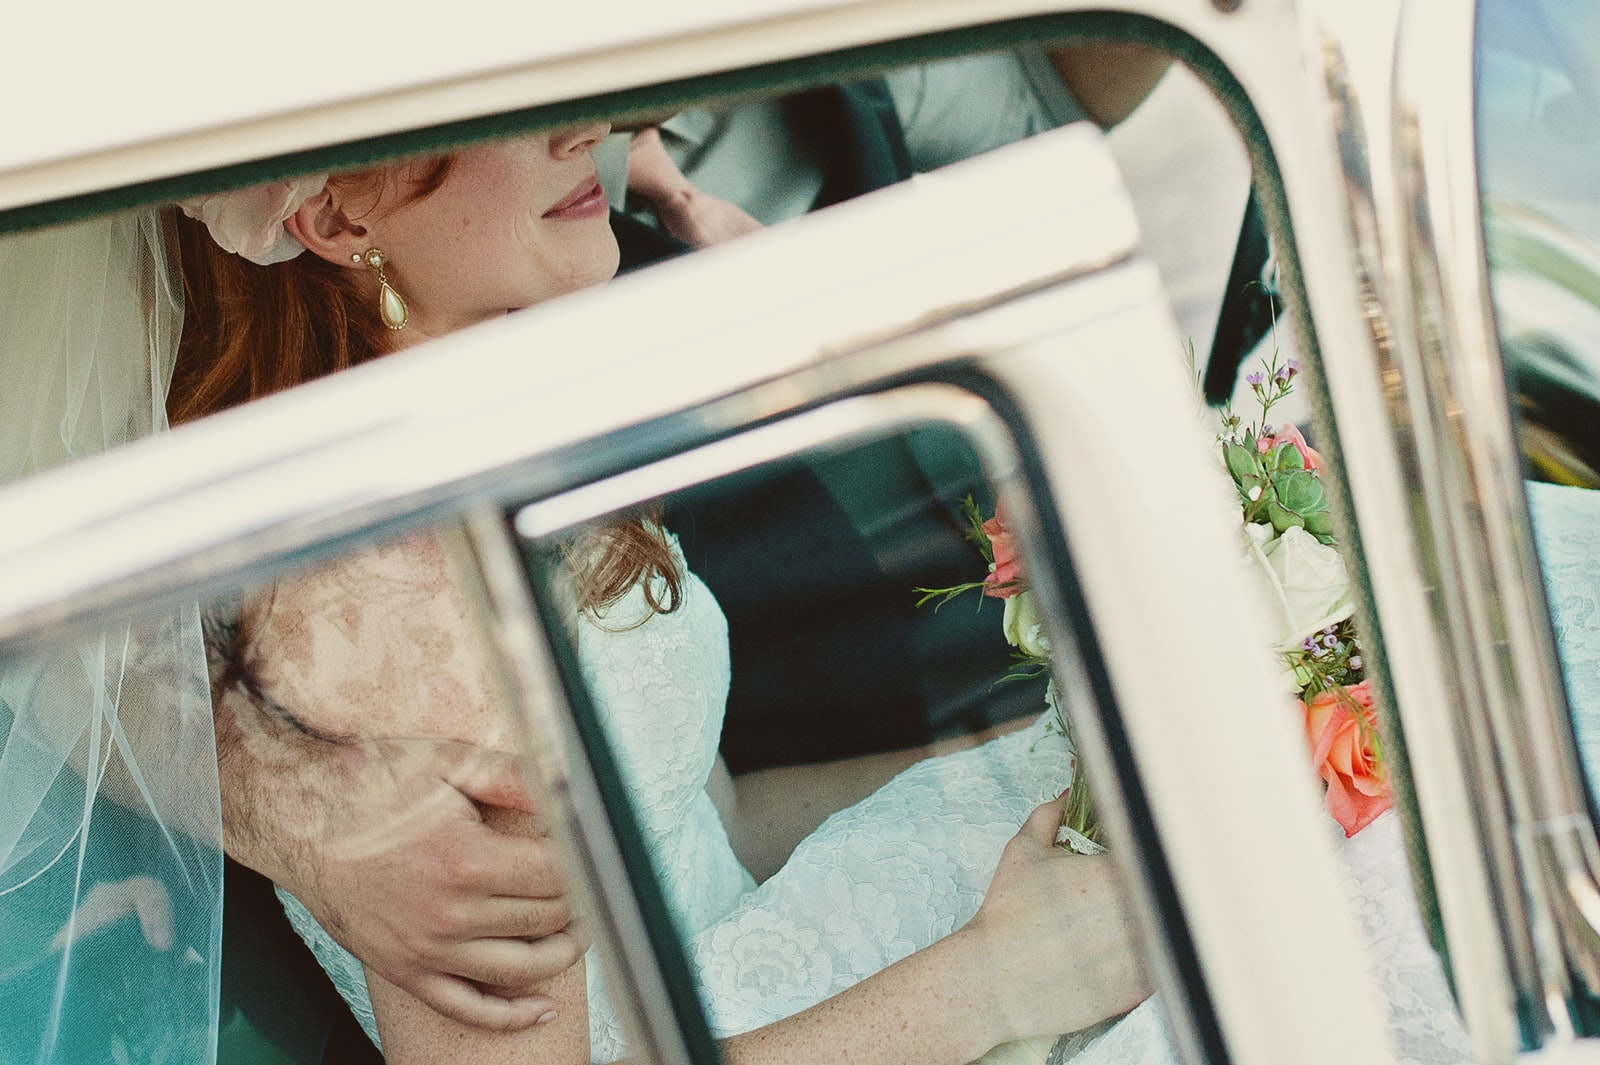 """Nikon D700 sample photo. """"Bride in white vehicle"""" photography"""